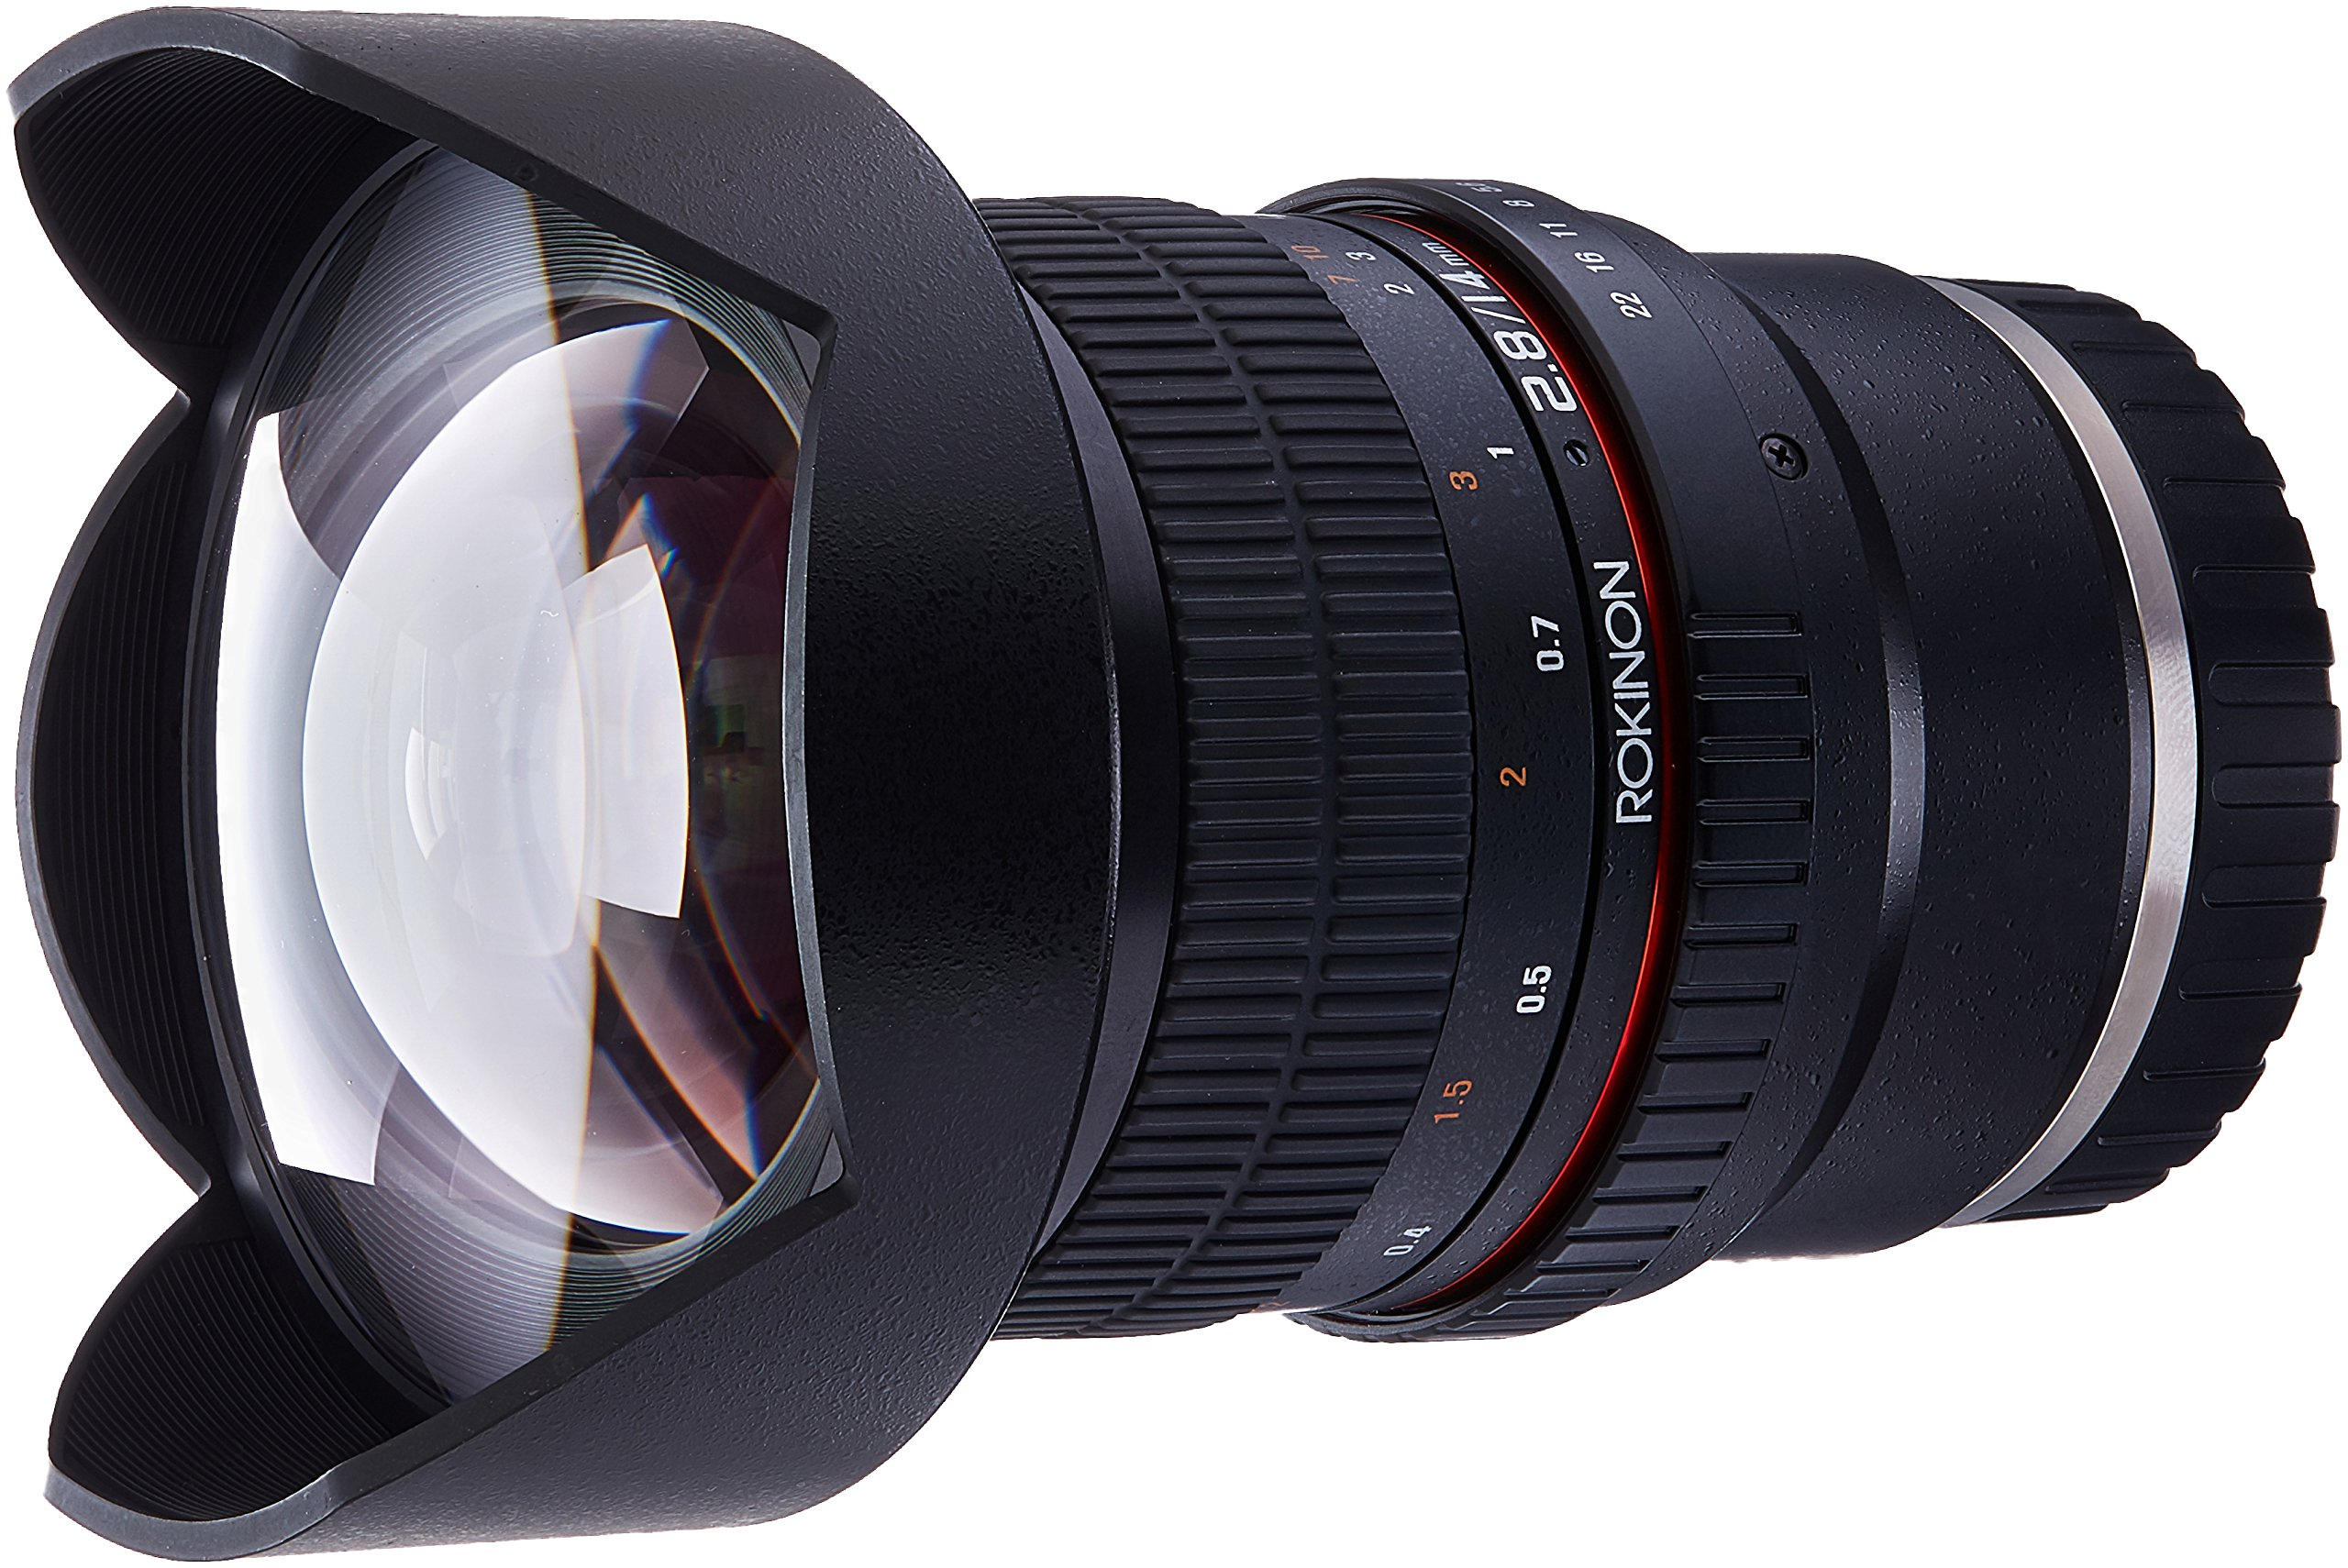 Rokinon FE14M-E 14mm F2.8 Ultra Wide Lens for Sony E-mount and Fixed Lens for Other Cameras